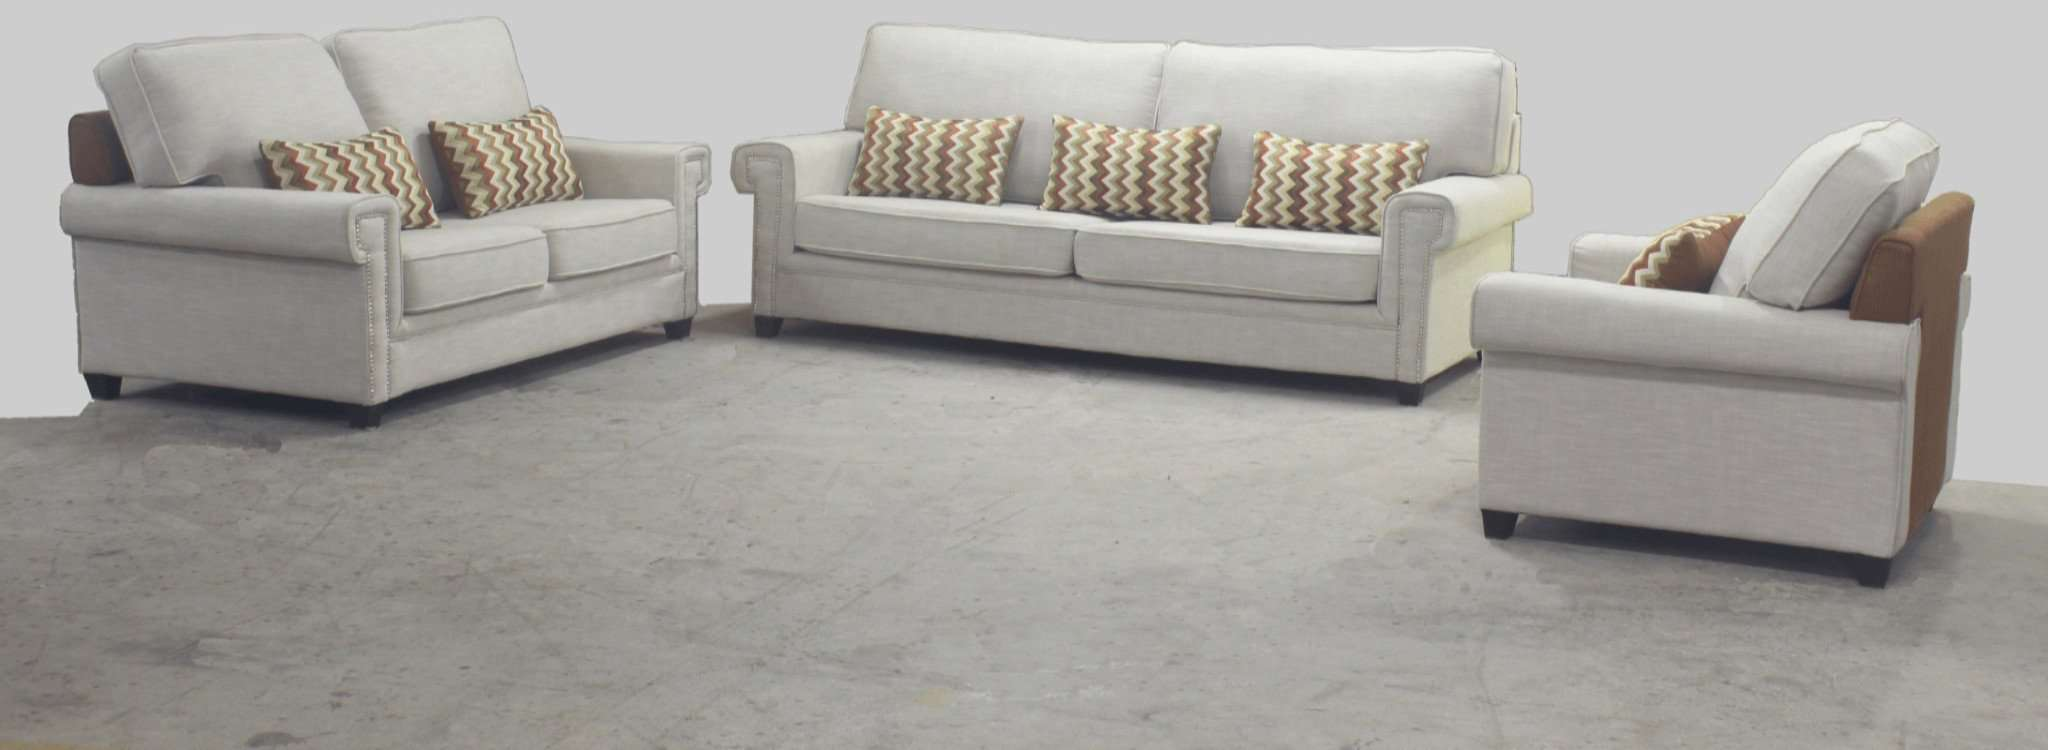 San Bernadino Sofa Set - Richicollection Furniture Warehouse